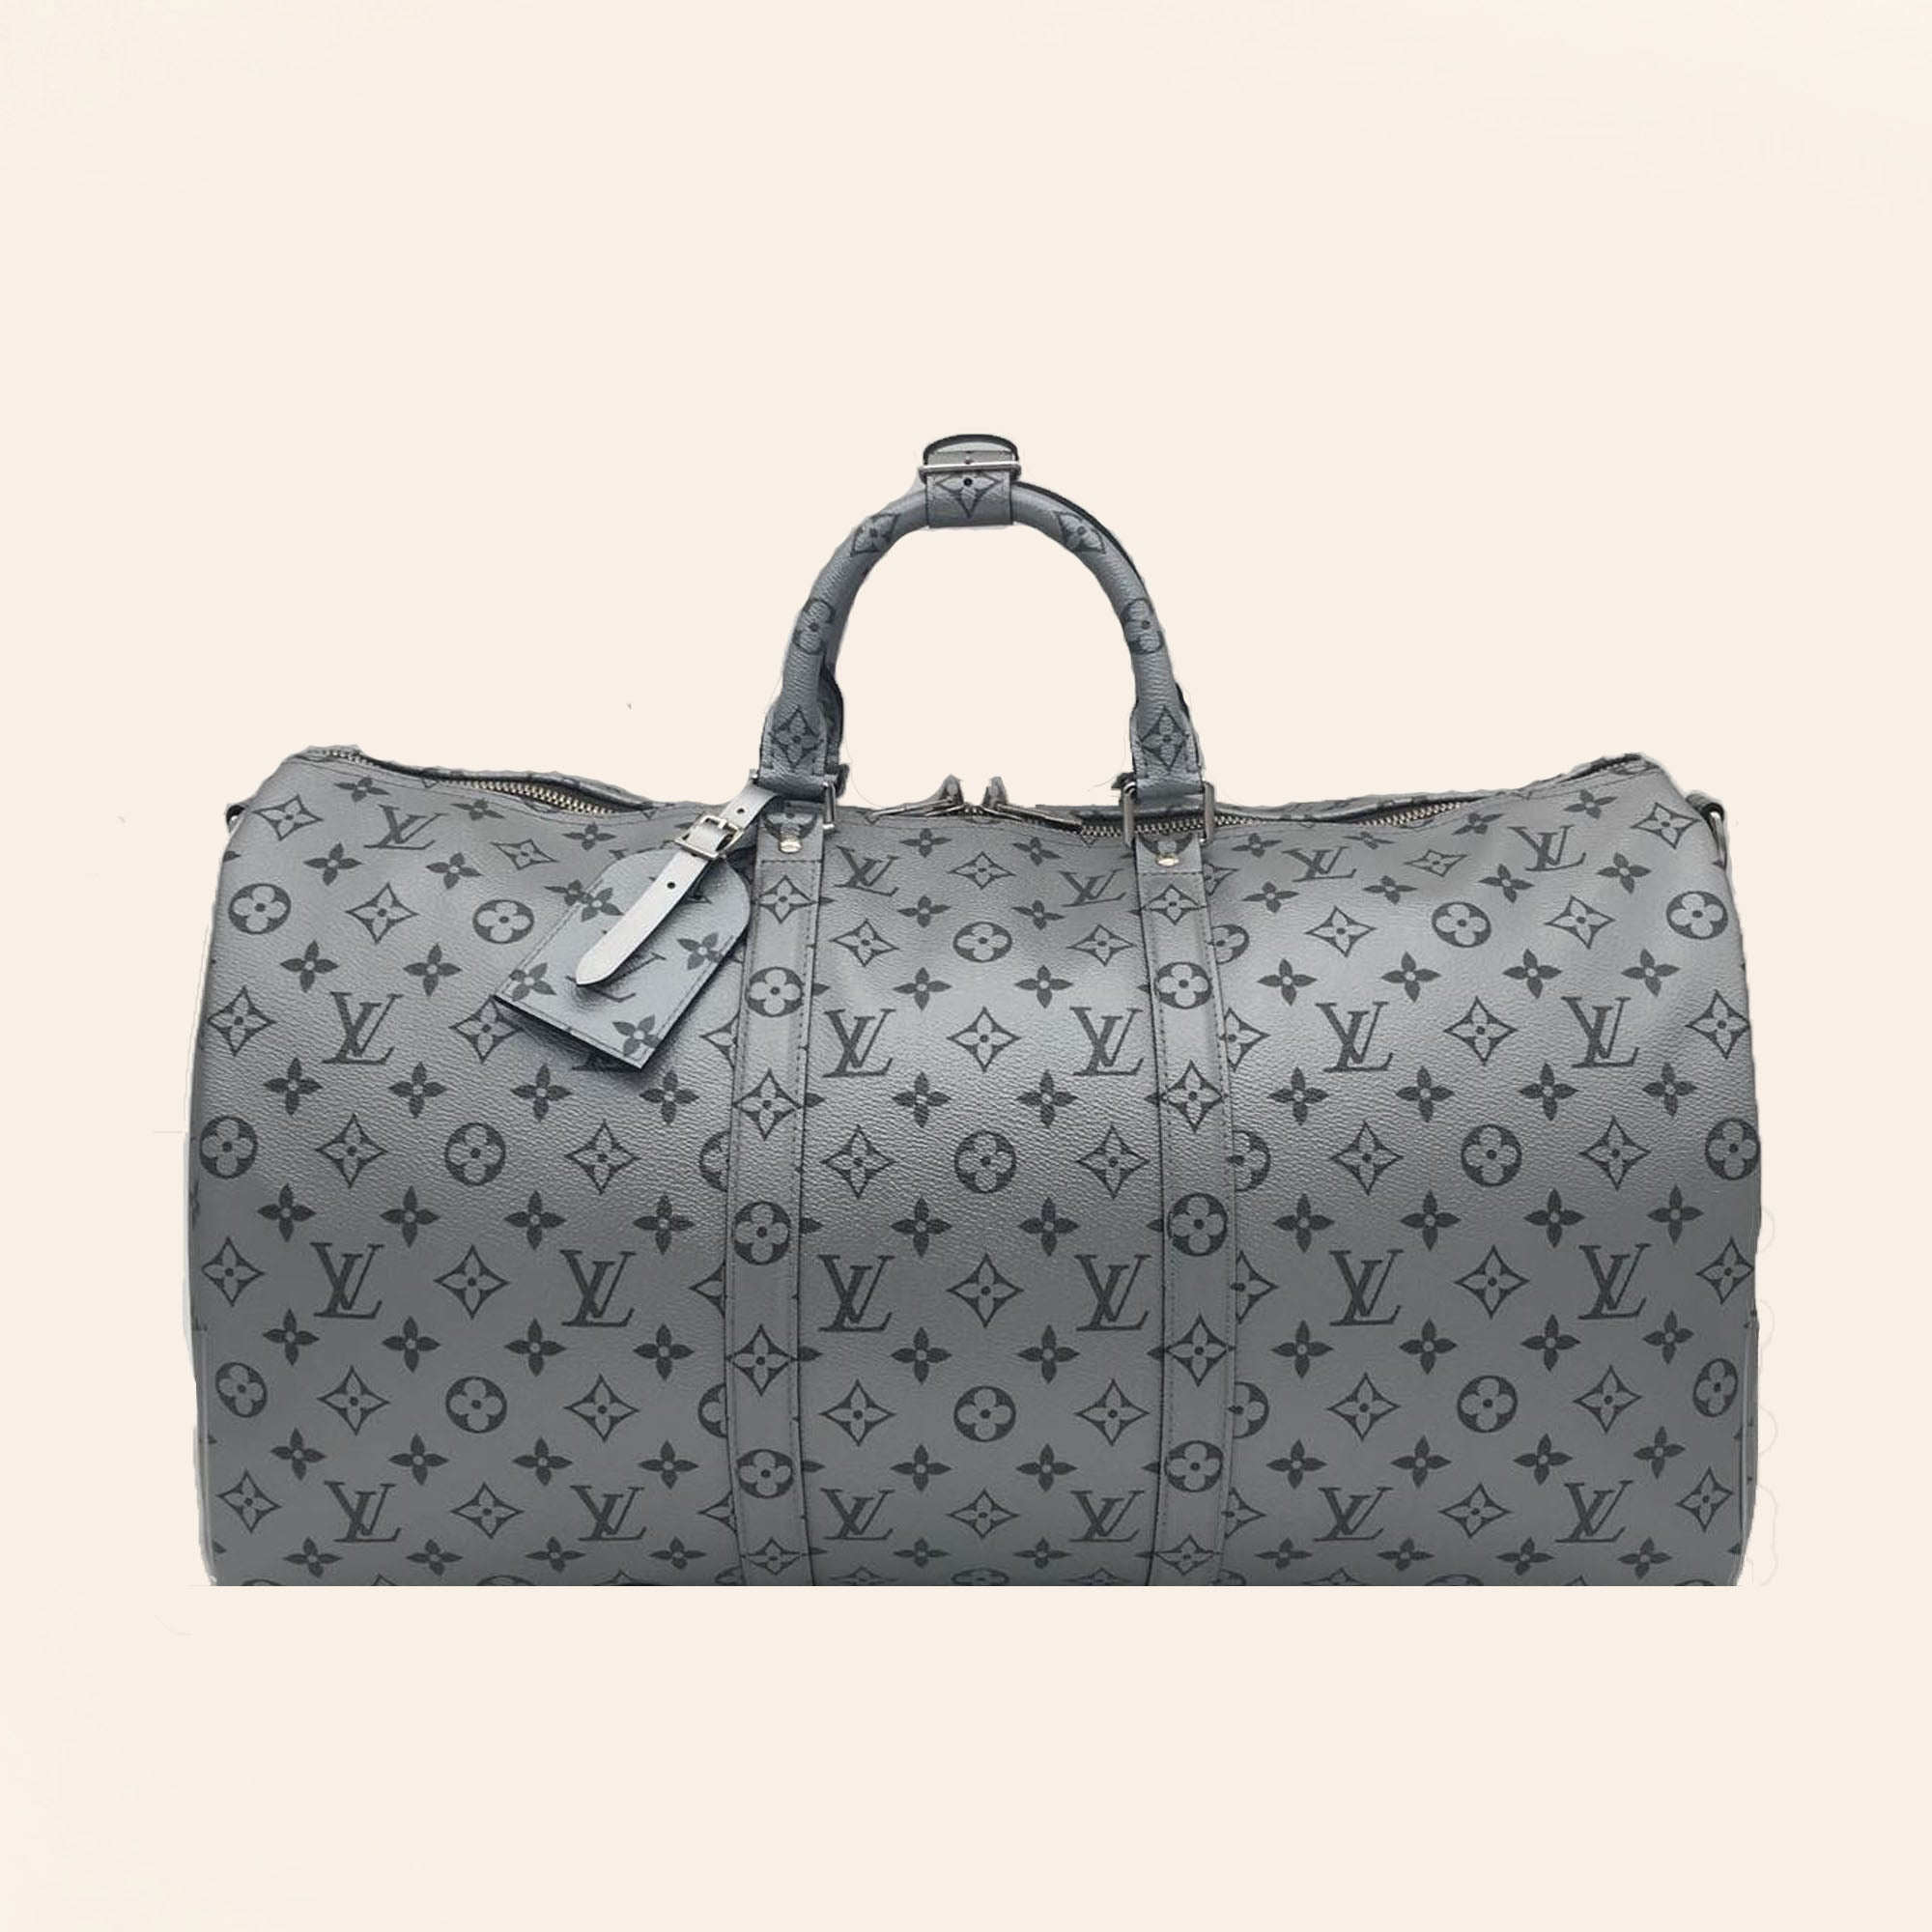 dd8cad953417 Louis Vuitton